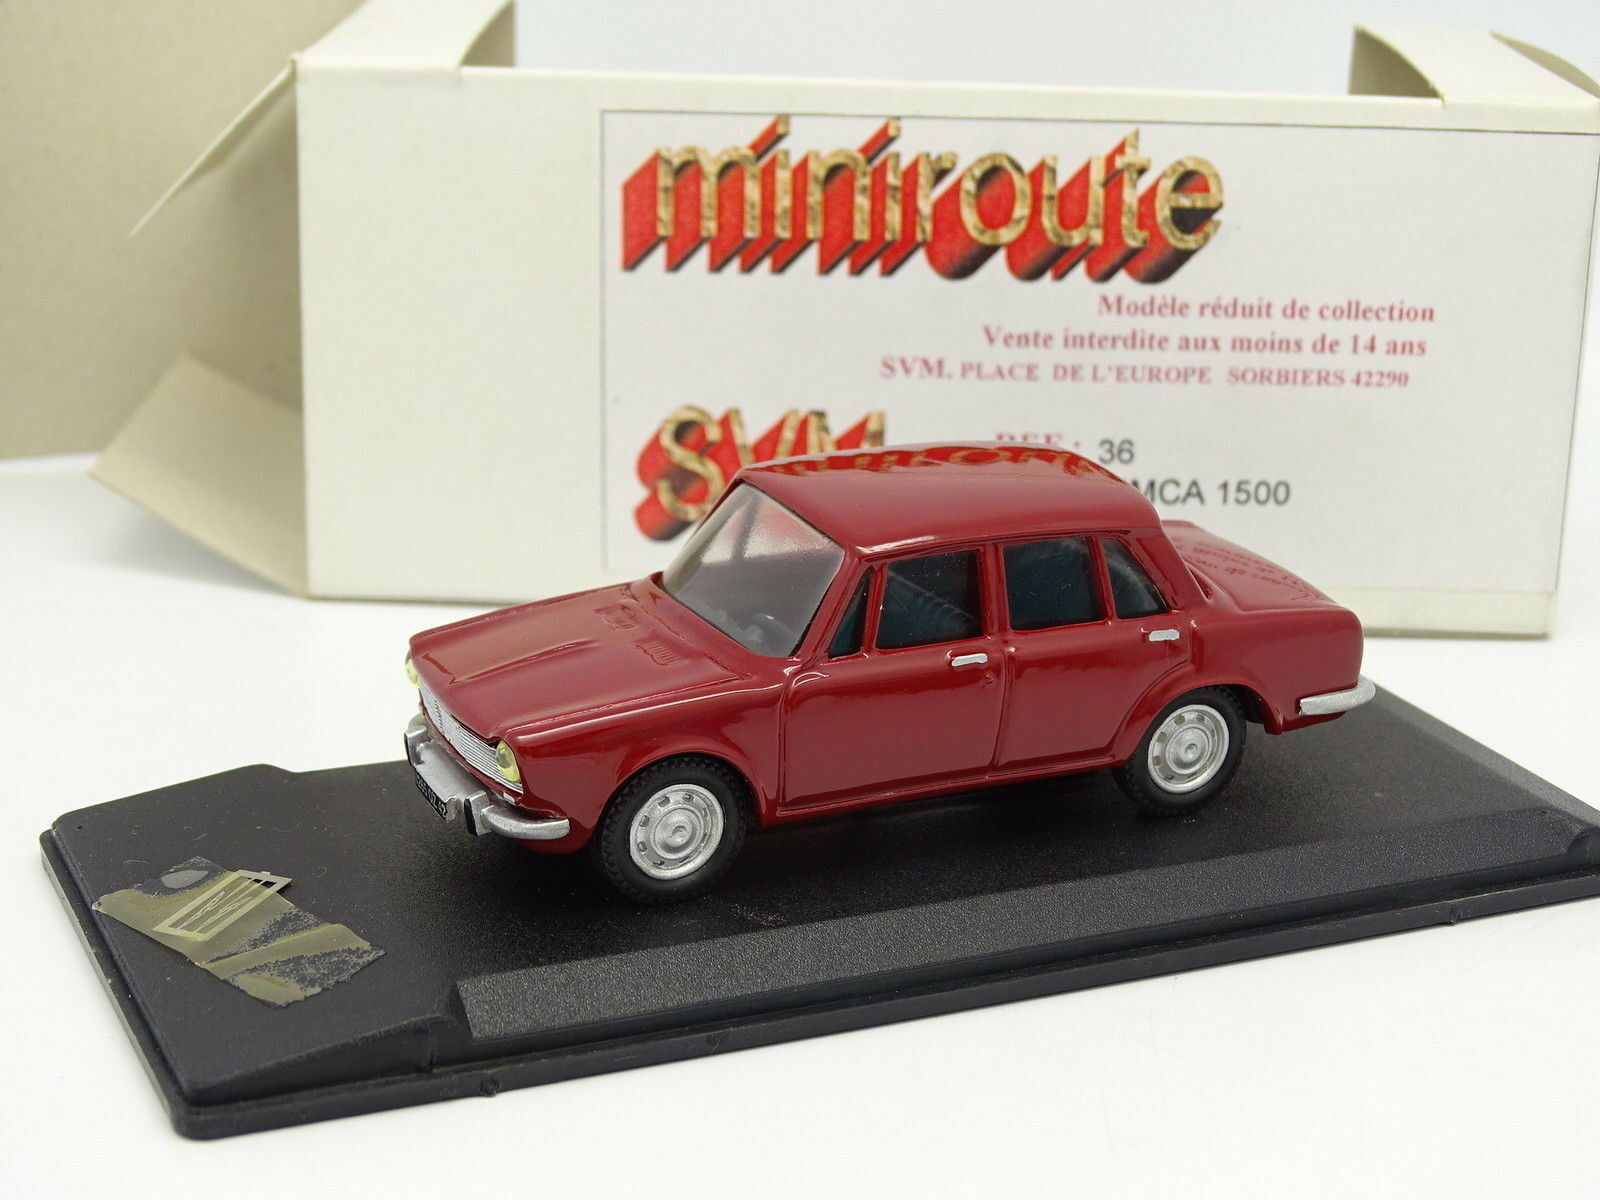 Miniroute Harz 1 43 - - - Simca 1500 red 666511